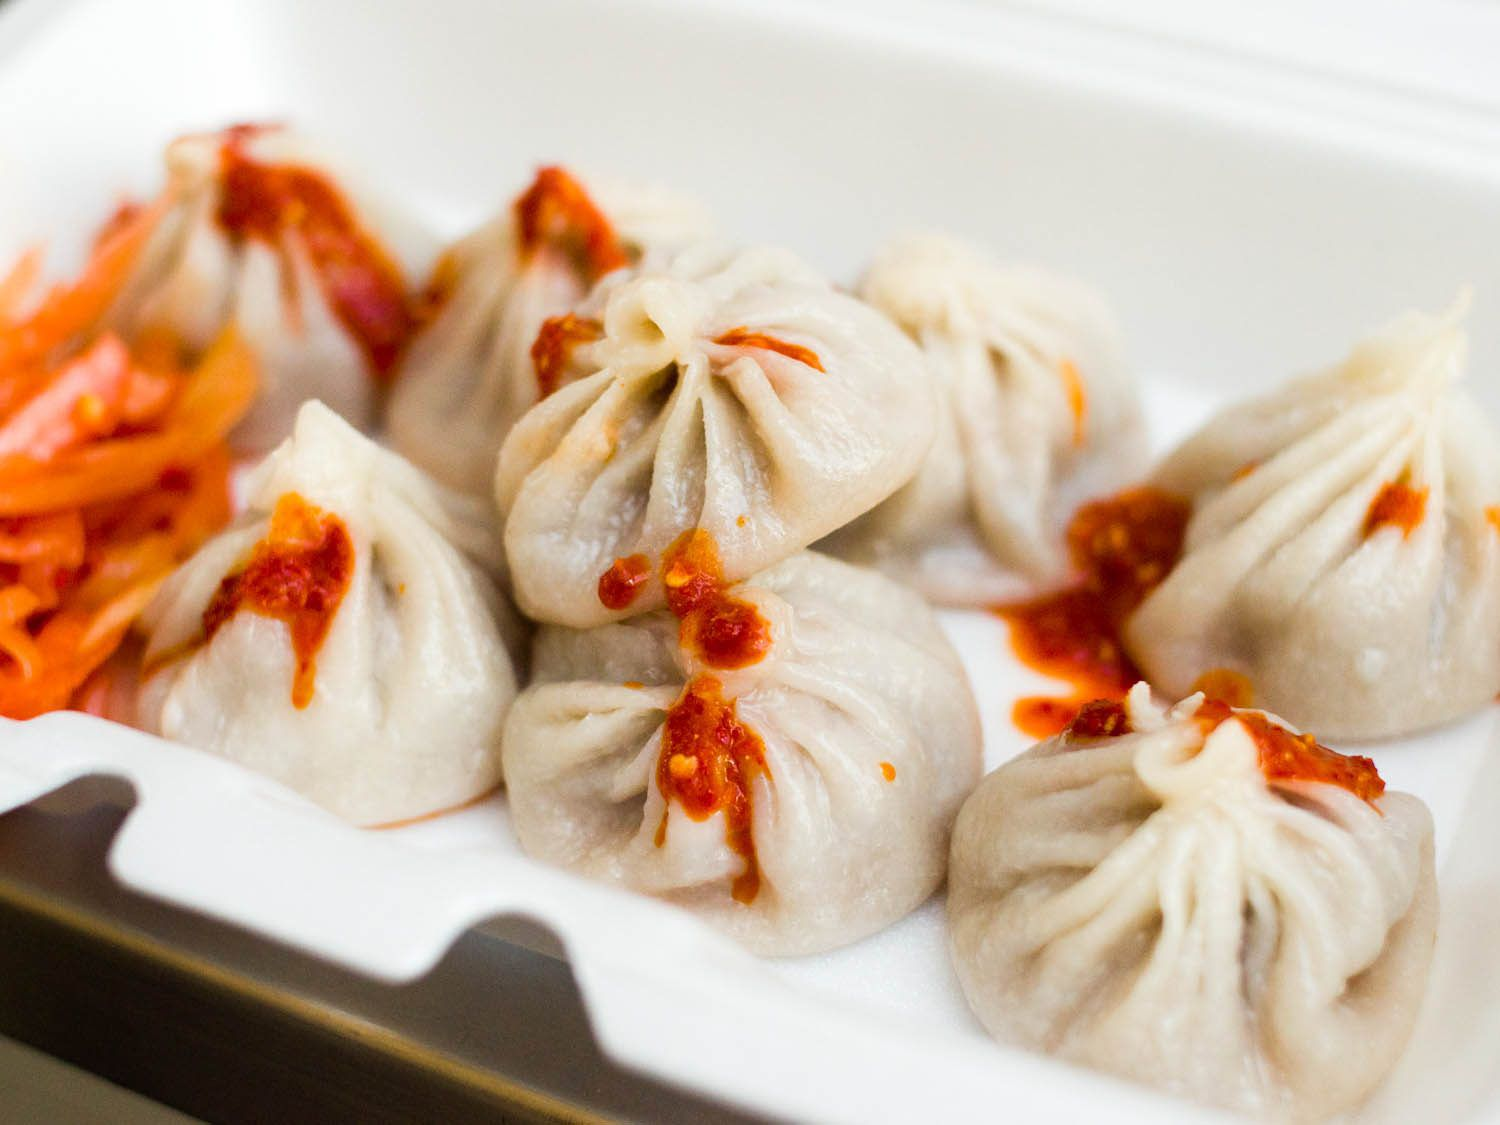 Close-up of momos (round Tibetan dumplings) dressed with chili sauce, on a white dish